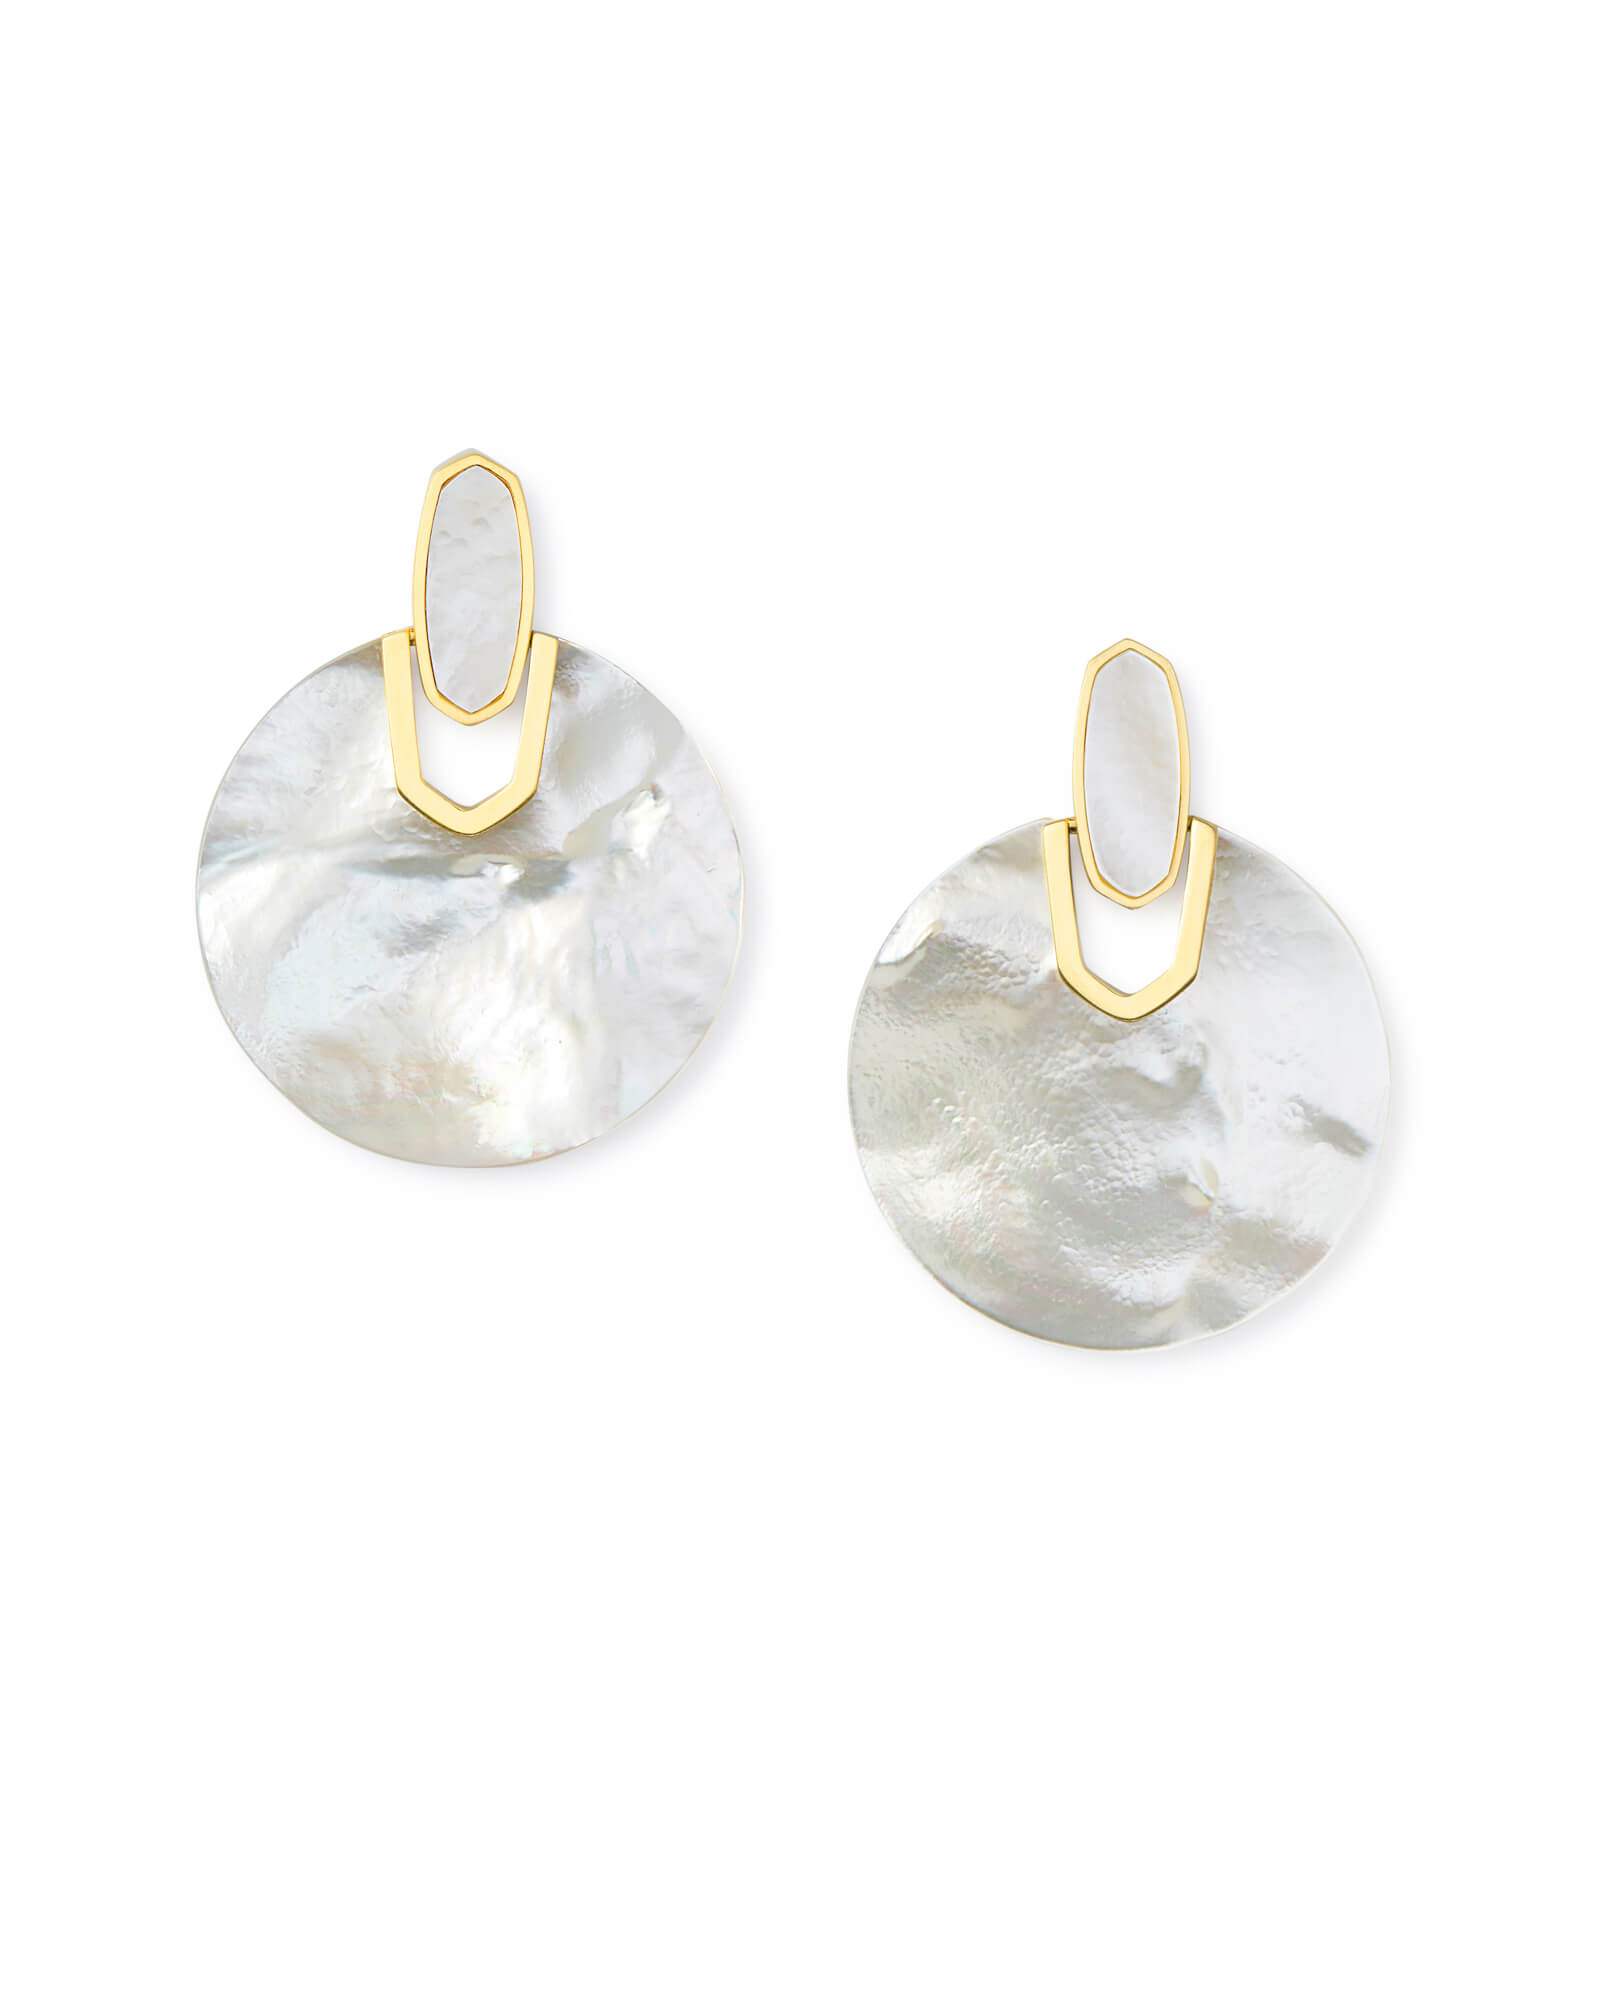 Didi Gold Statement Earrings in Ivory Pearl